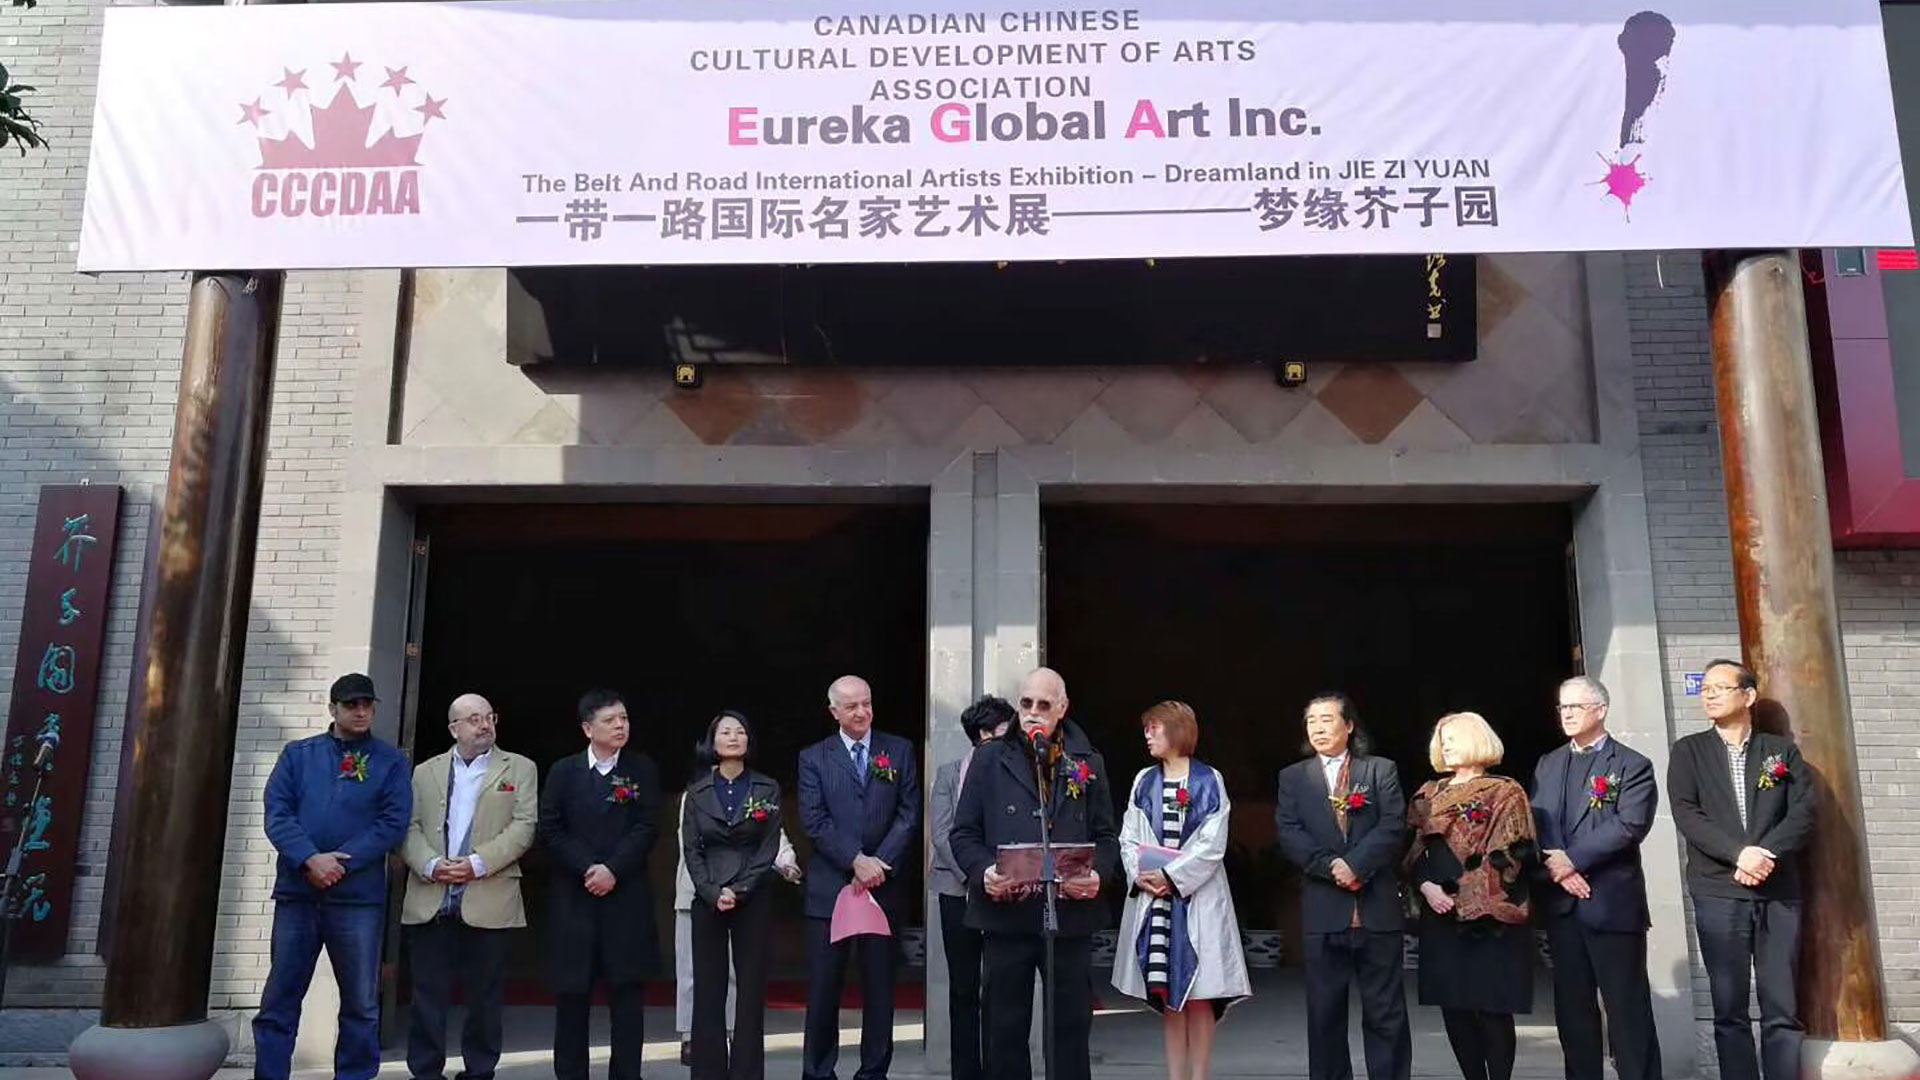 belt-and-road-international-artists-exhibition-9